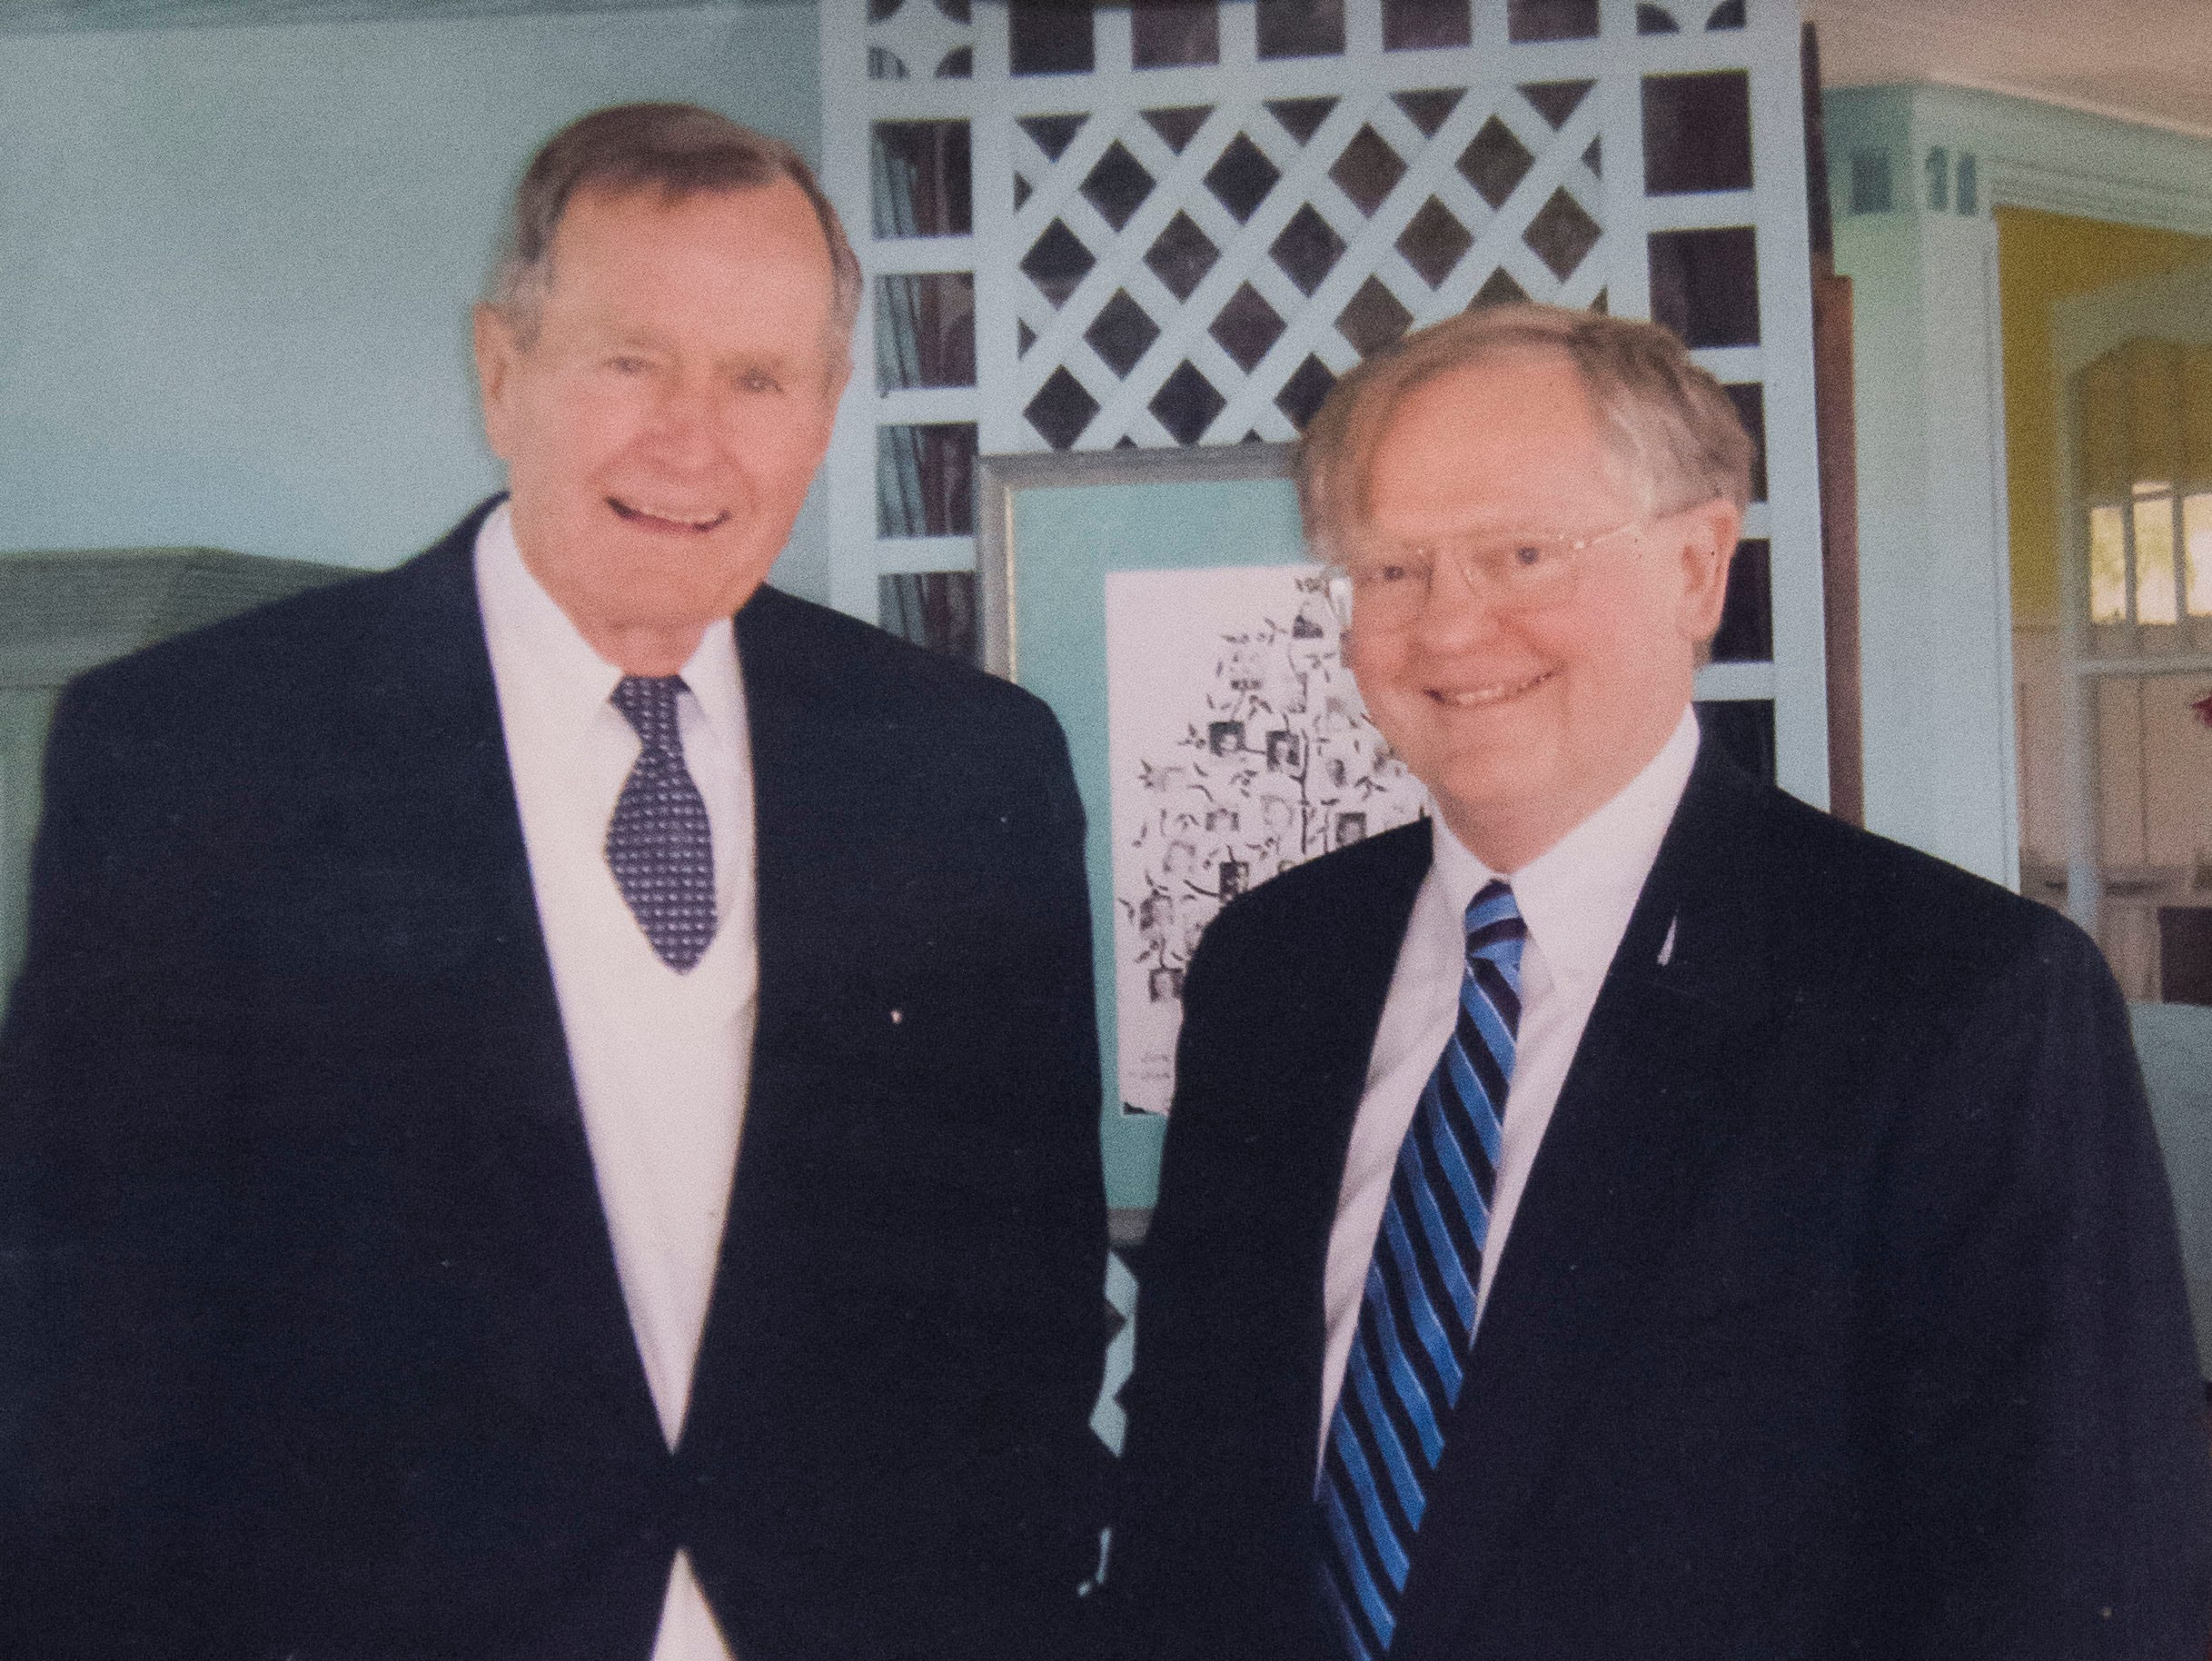 Former president George H.W. Bush hosts former Knoxville mayor Victor Ashe at the Bush compound in Kennebunkport, Maine, 2005.